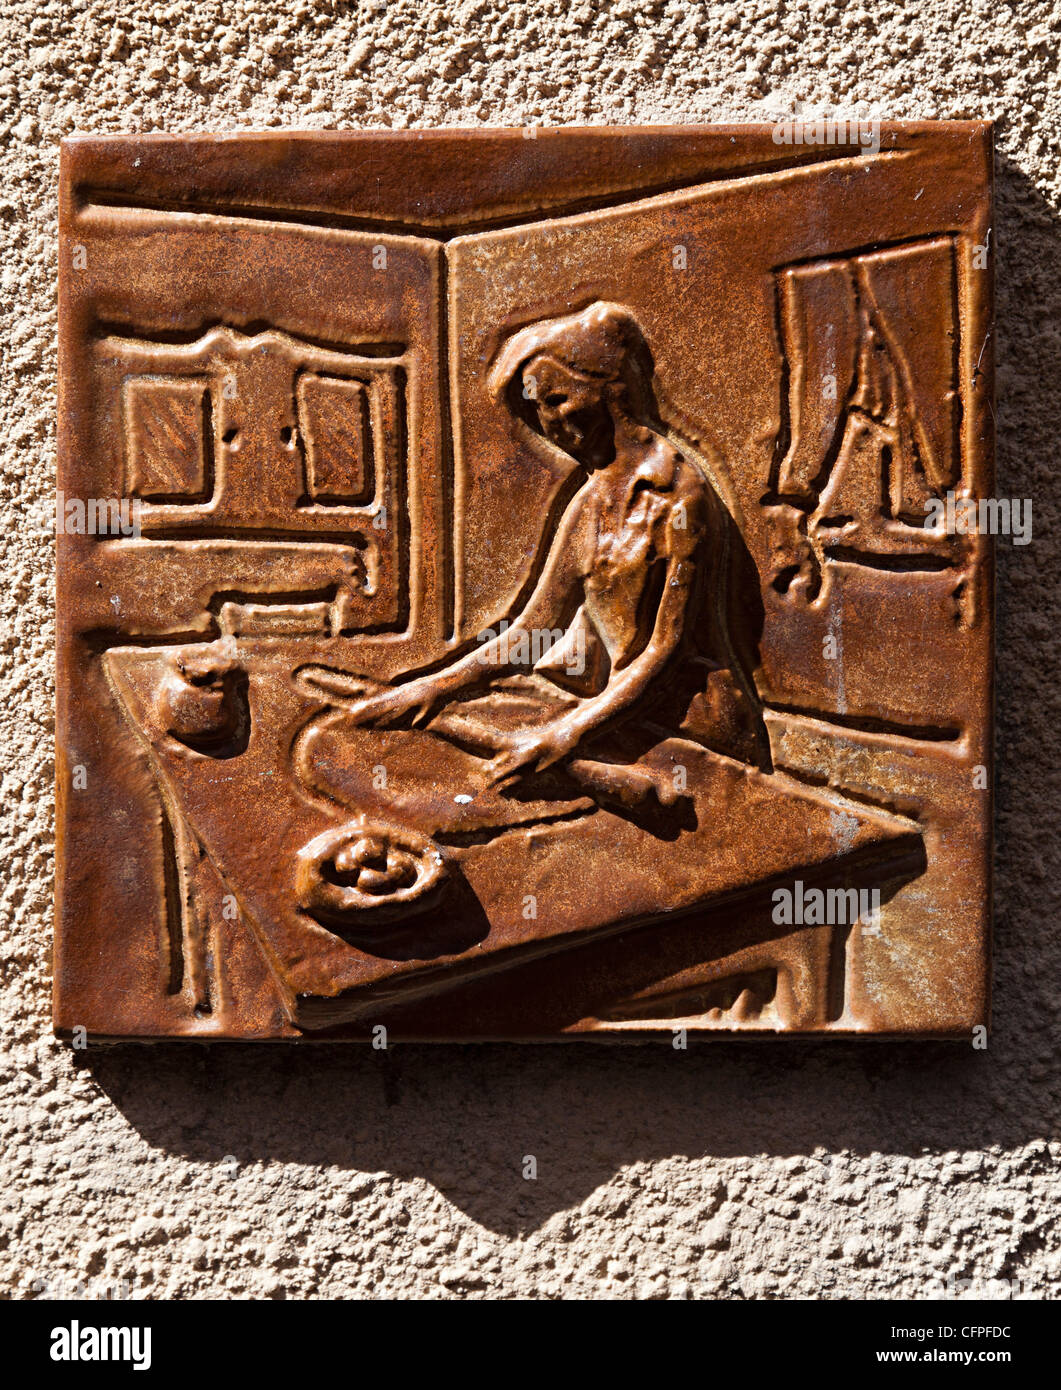 Pottery symbol of woman baking set into wall of patisserie baker, Olargues, Herault, haute Languedoc, France - Stock Image